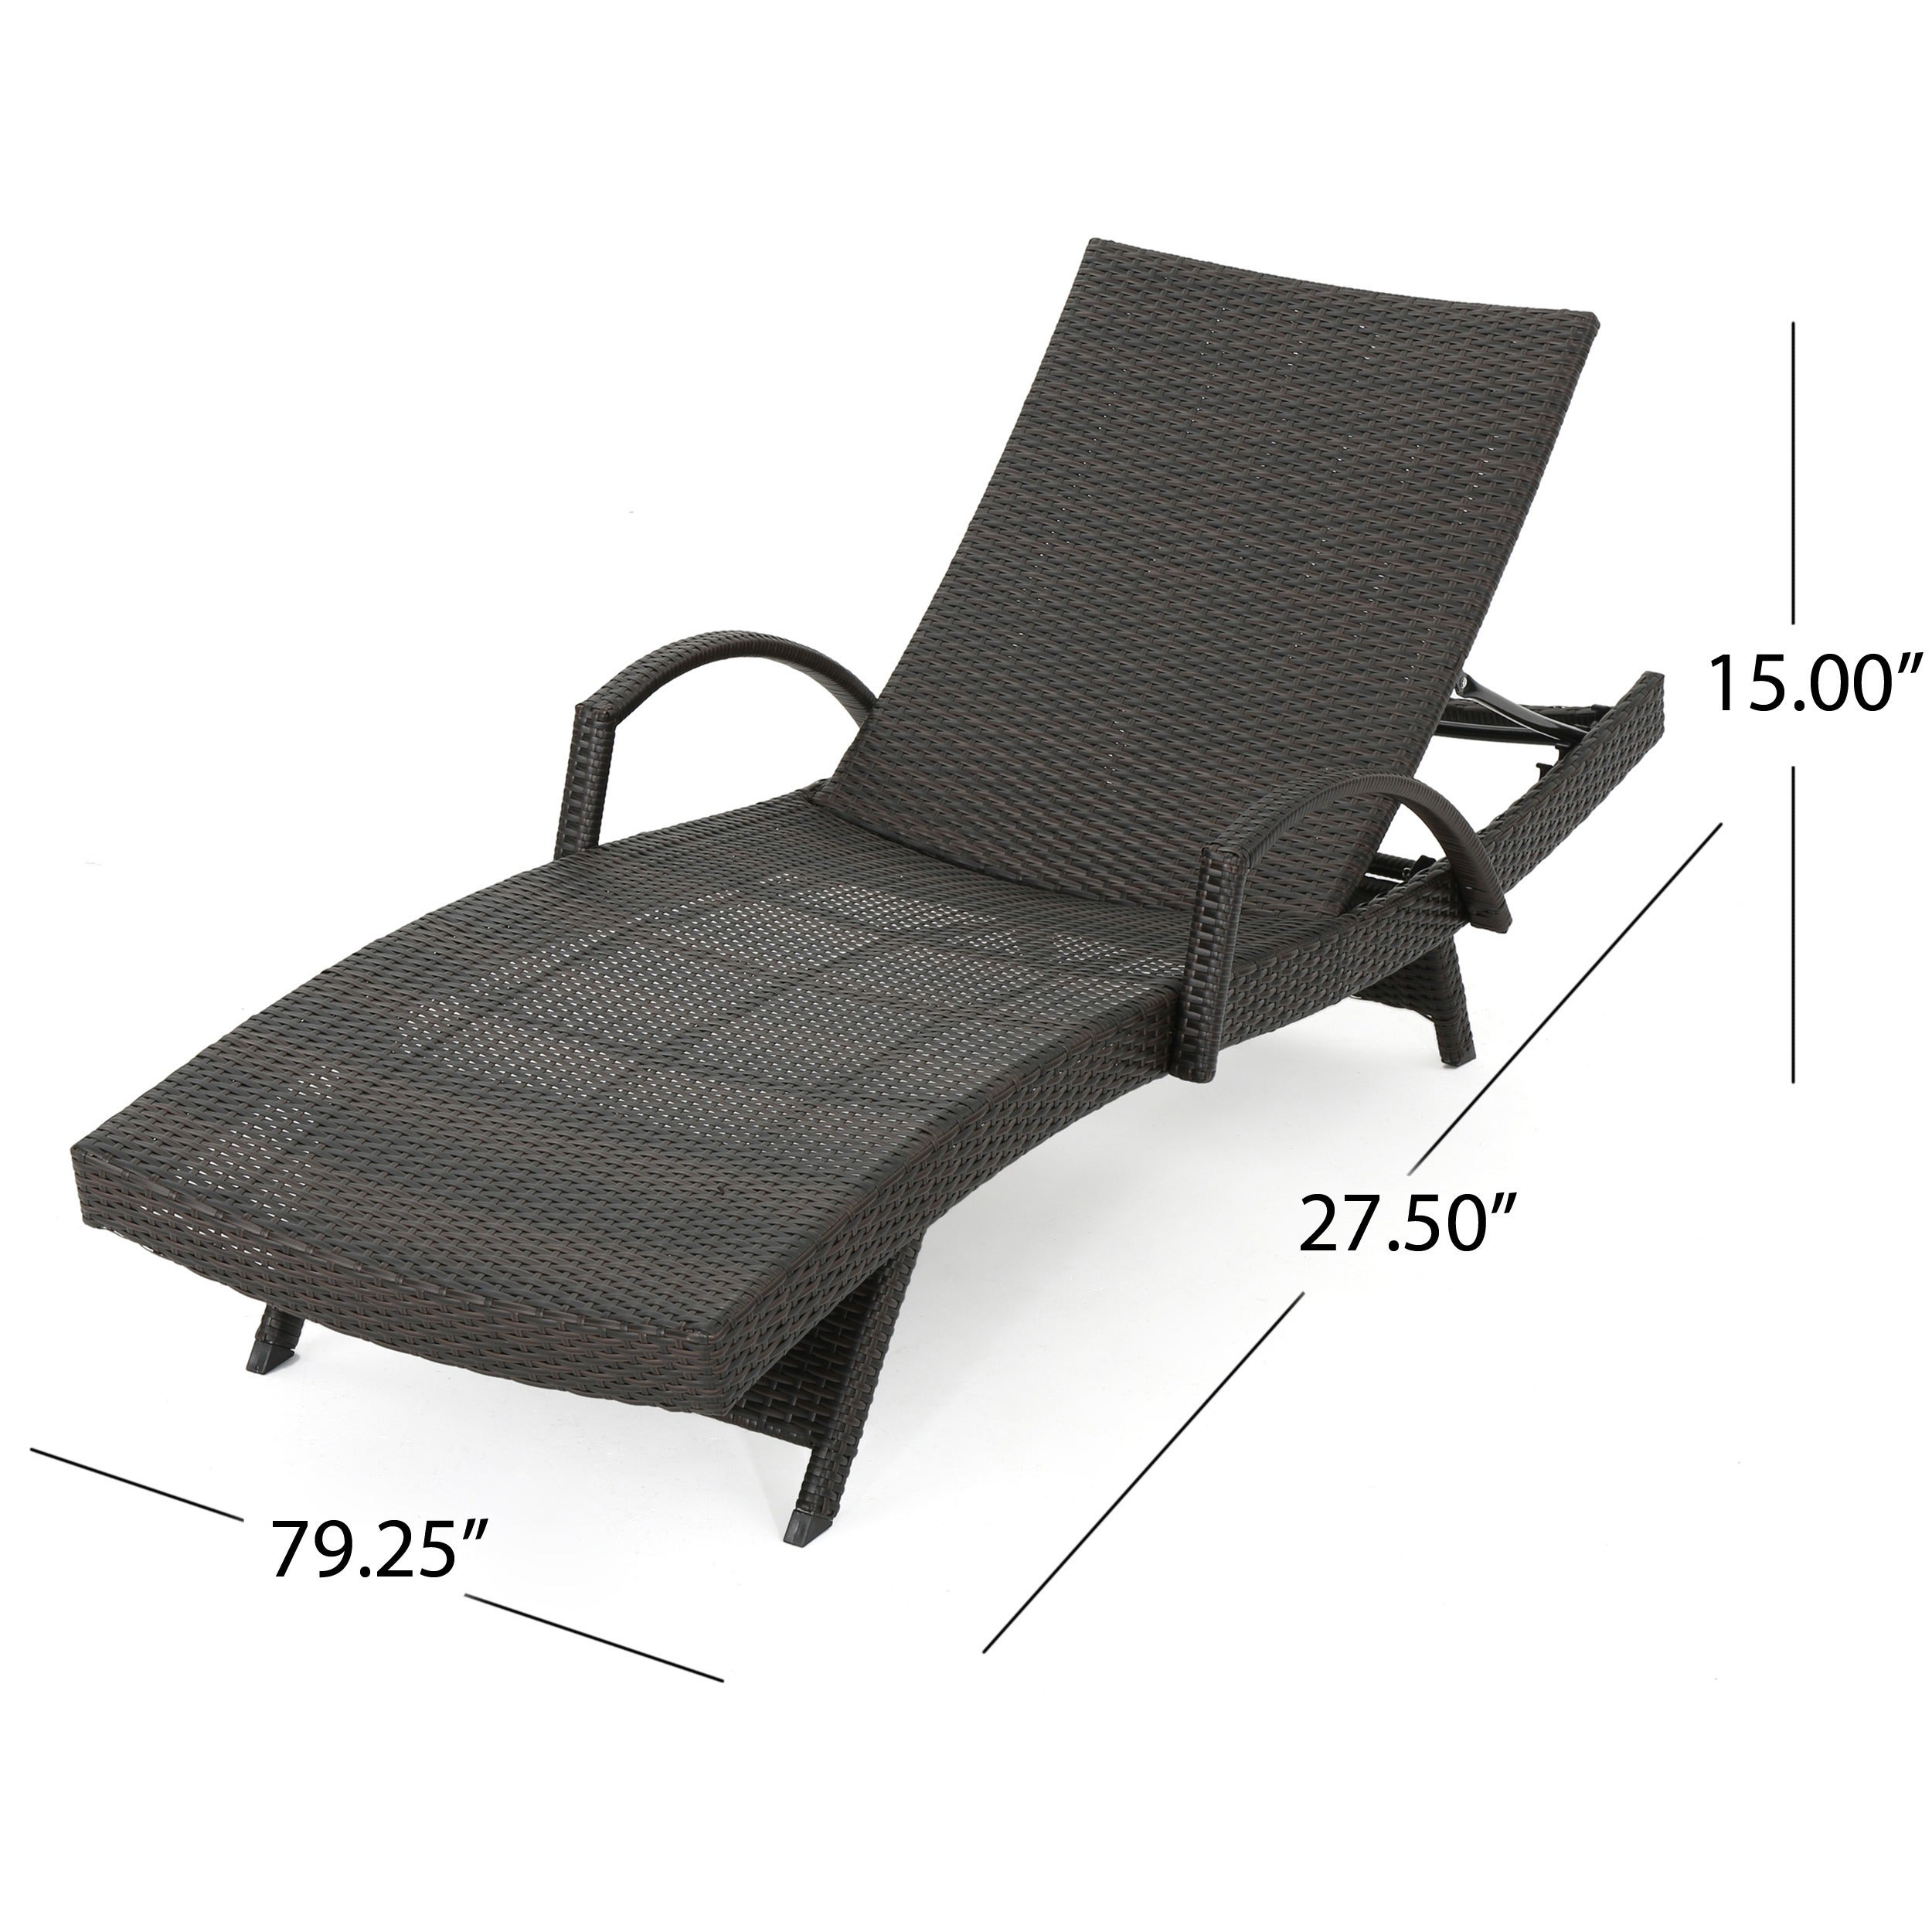 Toscana Outdoor Wicker Armed Chaise Lounge Chair Set Of 2 By Christopher Knight Home On Free Shipping Today 11324498